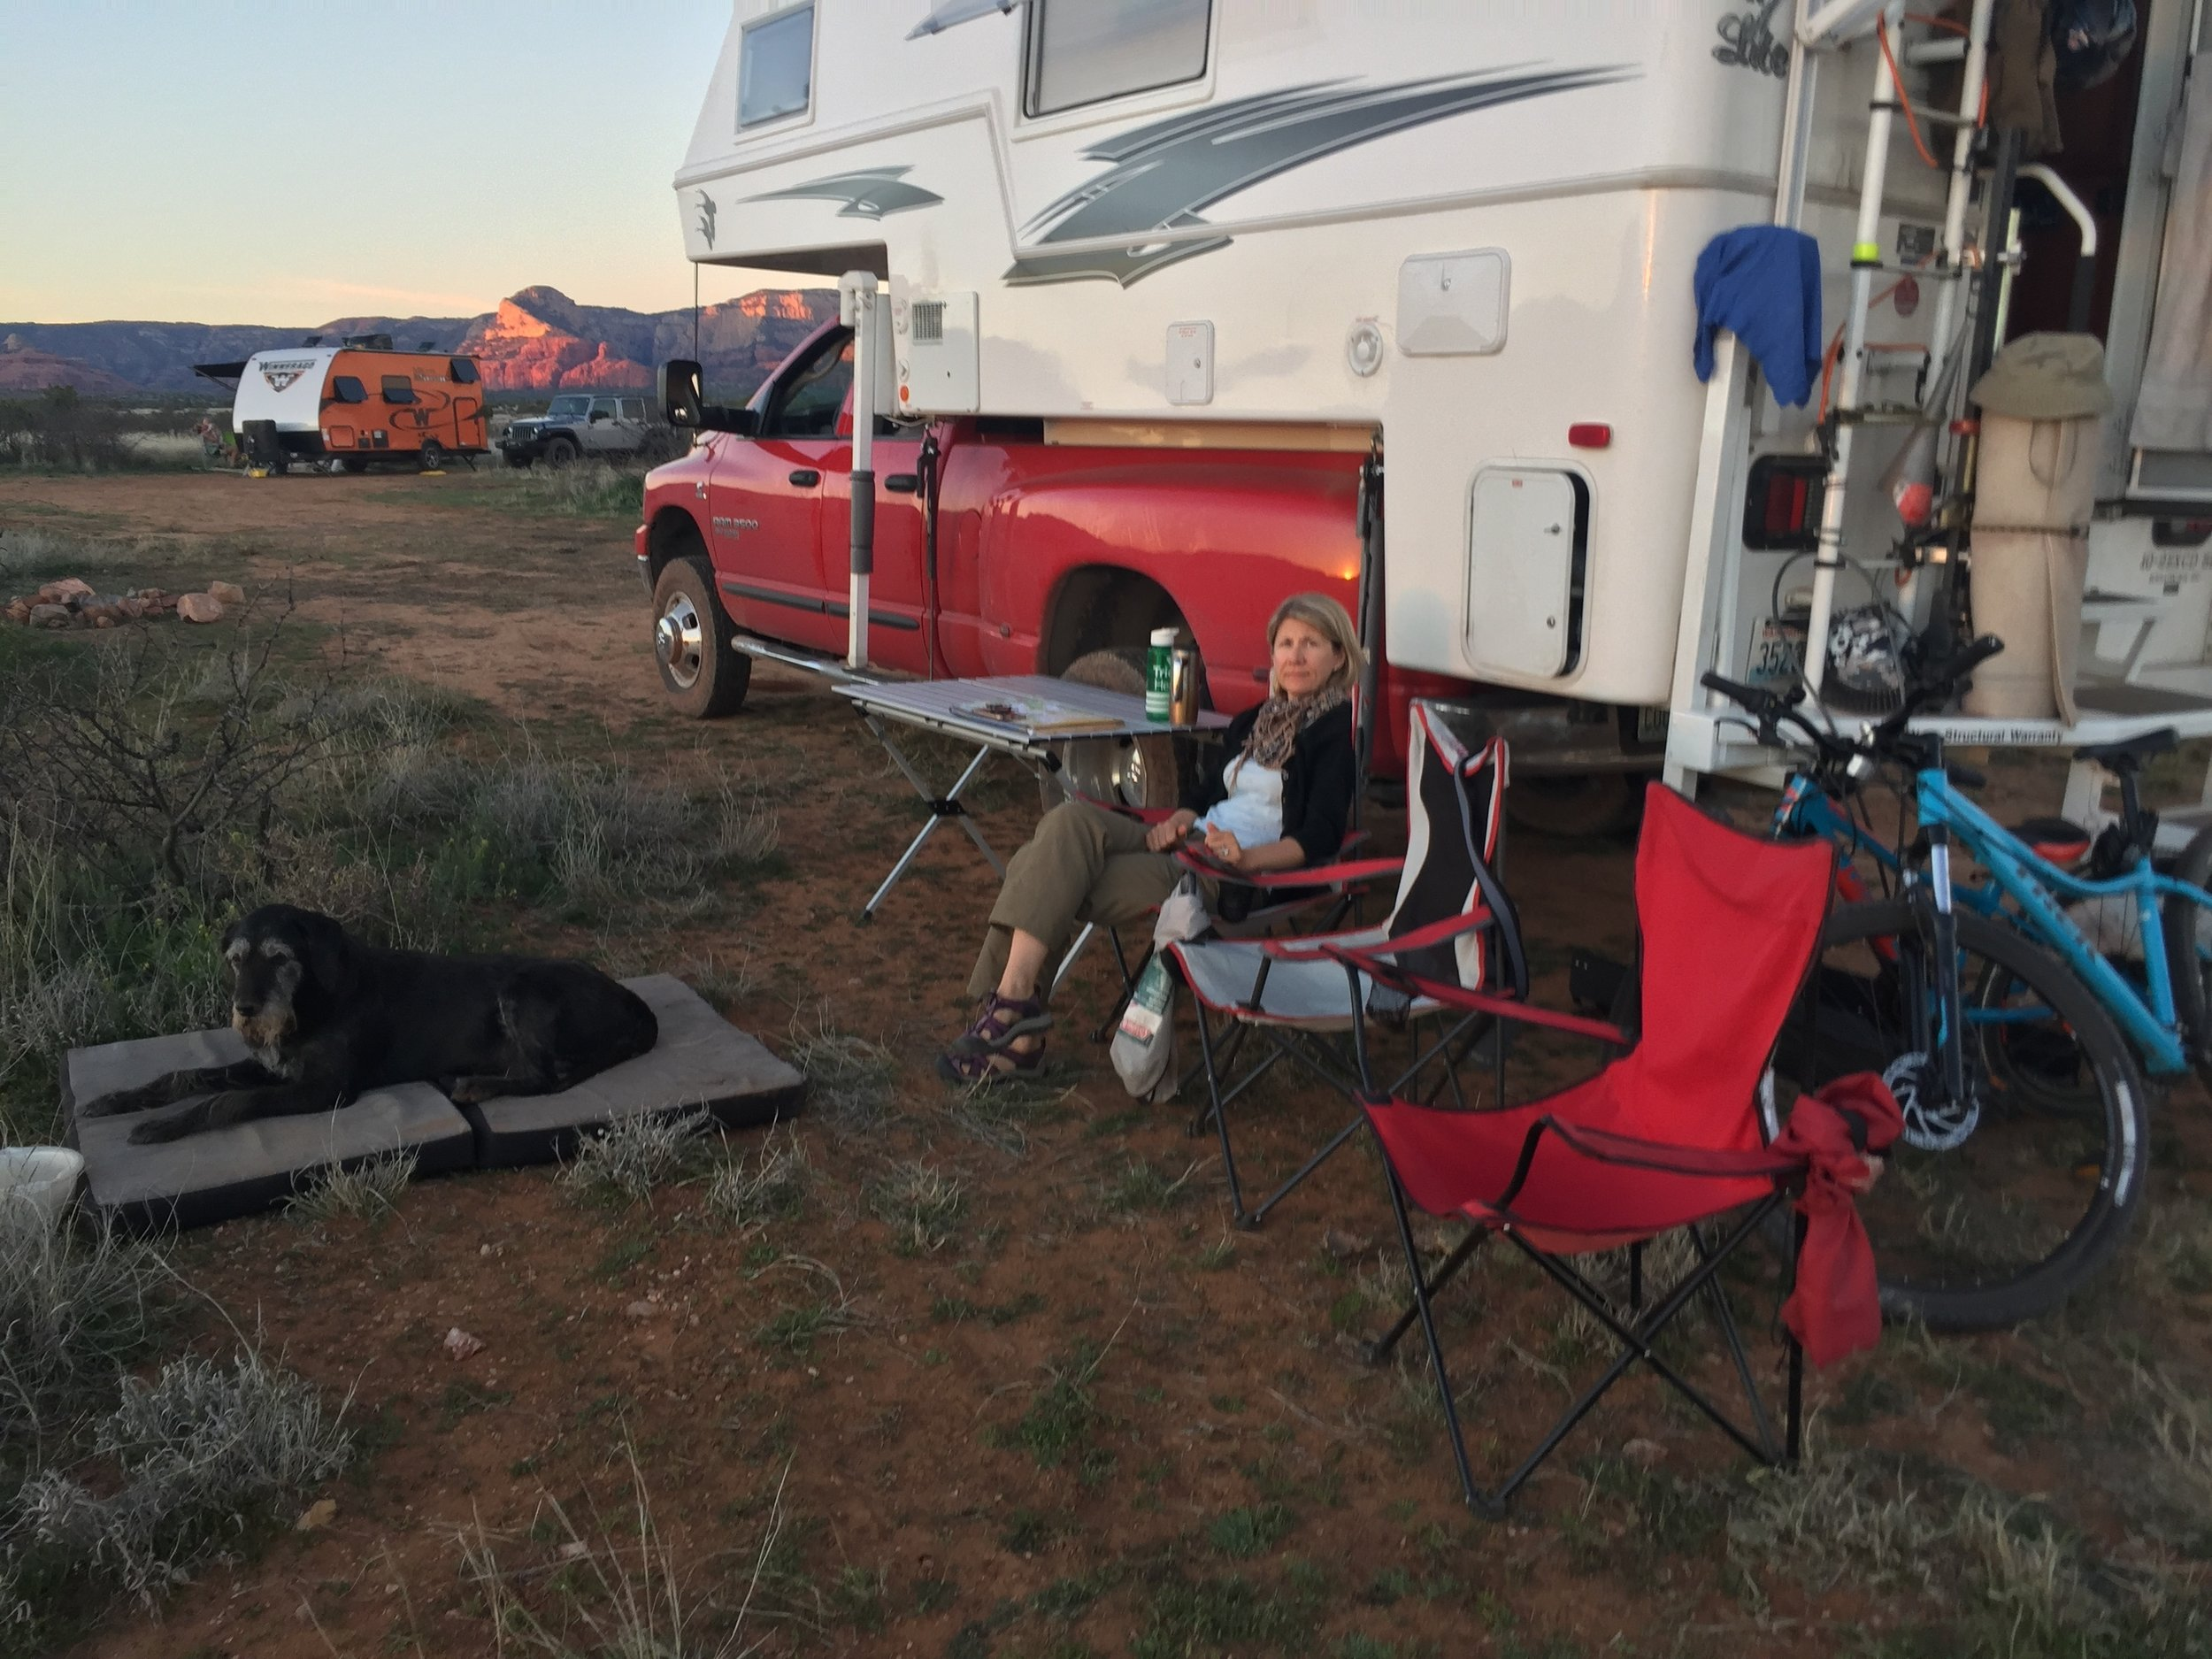 Spring Break in AZ = Busy campgrounds